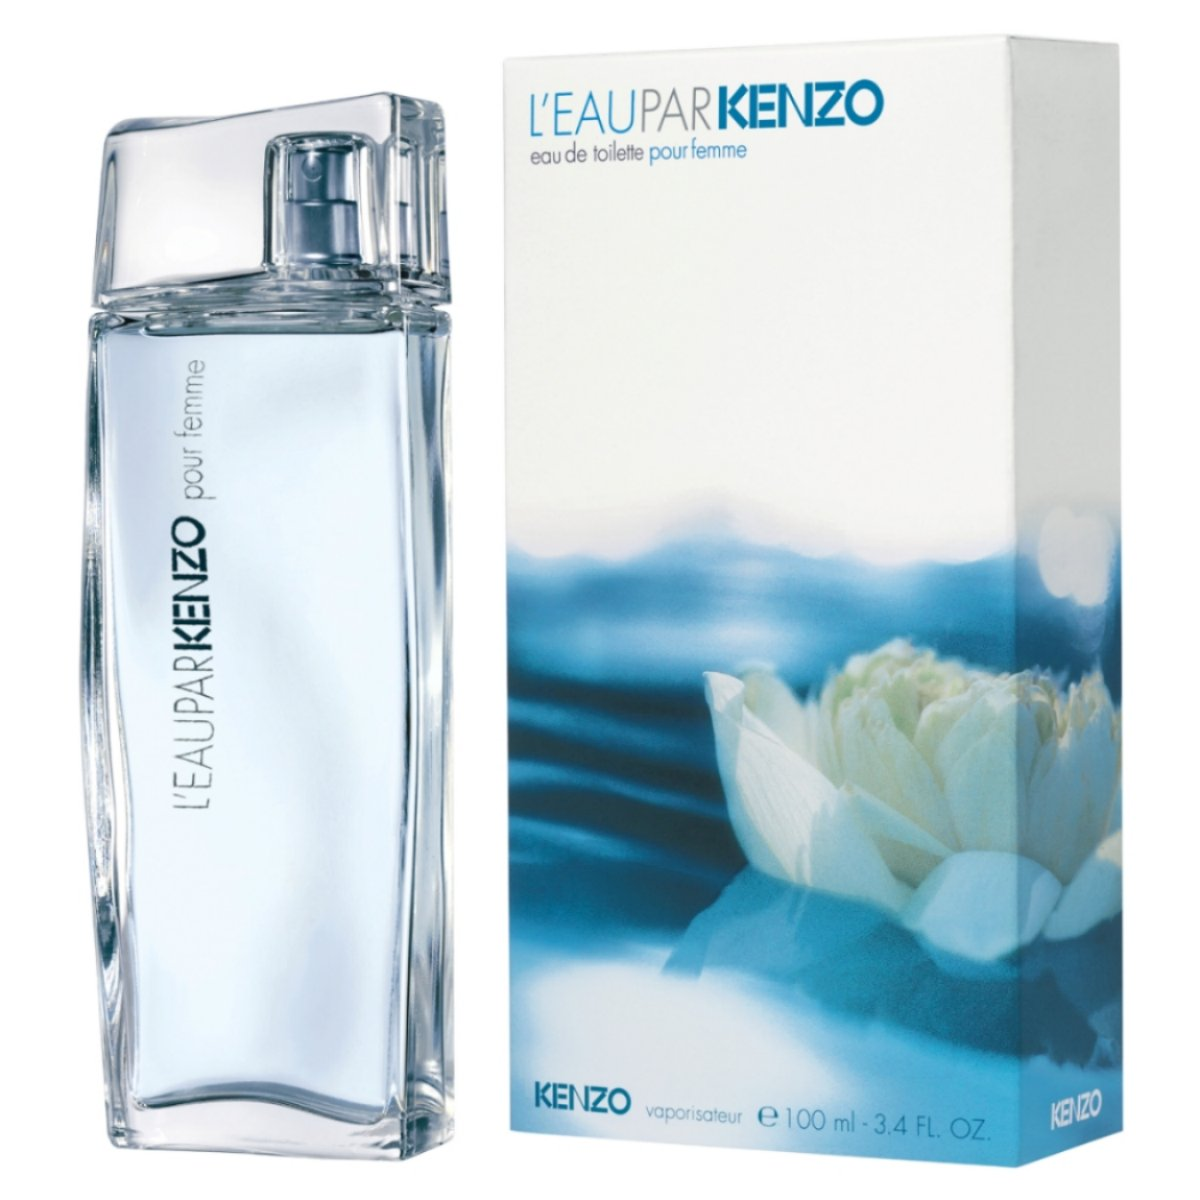 P moreover 324399 Neon Lasers together with Flower By Kenzo Eau De Lumi Re 43247 moreover Tinte Revlon Colorsilk 54 Castano Claro Dorado additionally 85. on kenzo perfume